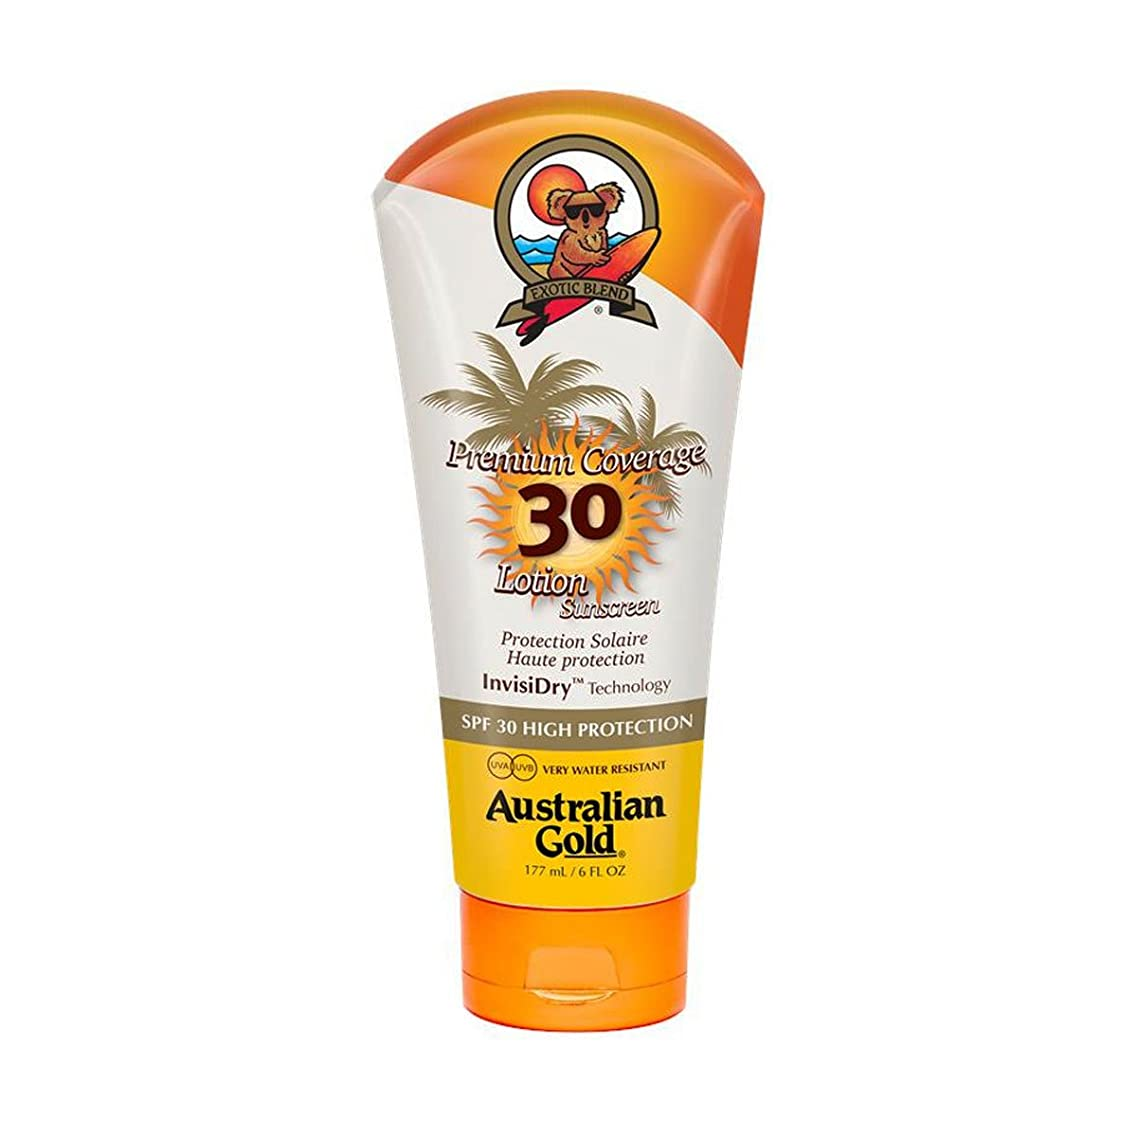 震えサーマルママAustralian Gold Premium Coverage Lotion Spf30 177ml [並行輸入品]